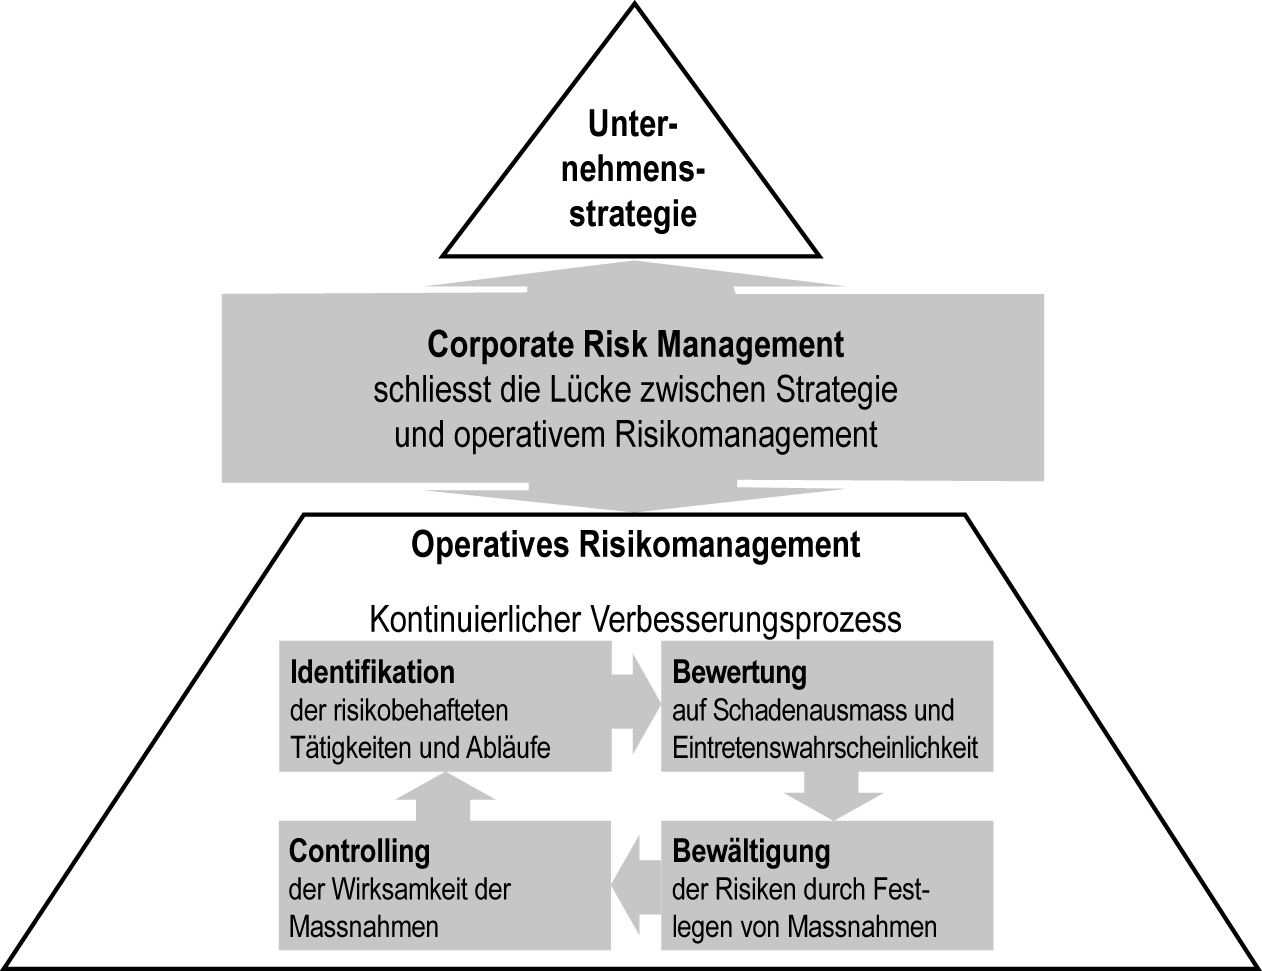 Informationsgrafik, die das Corporate Risk Management erläutert